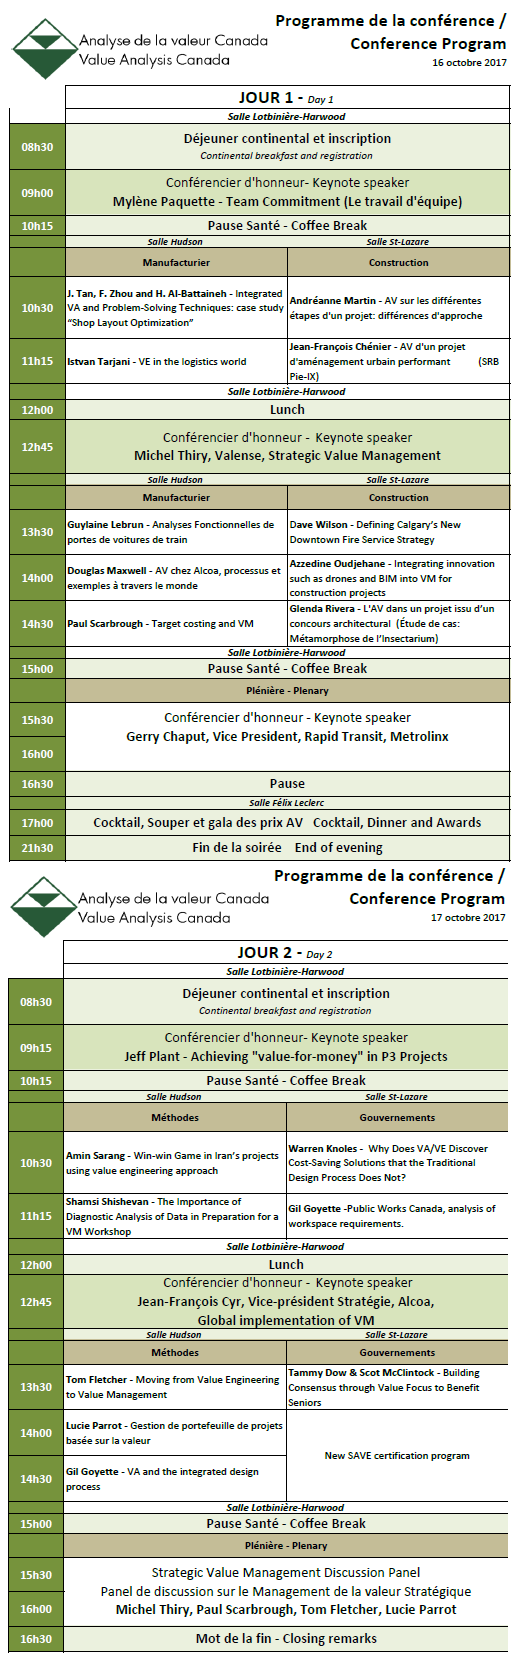 2017 Conference Program / Programme de la conférence